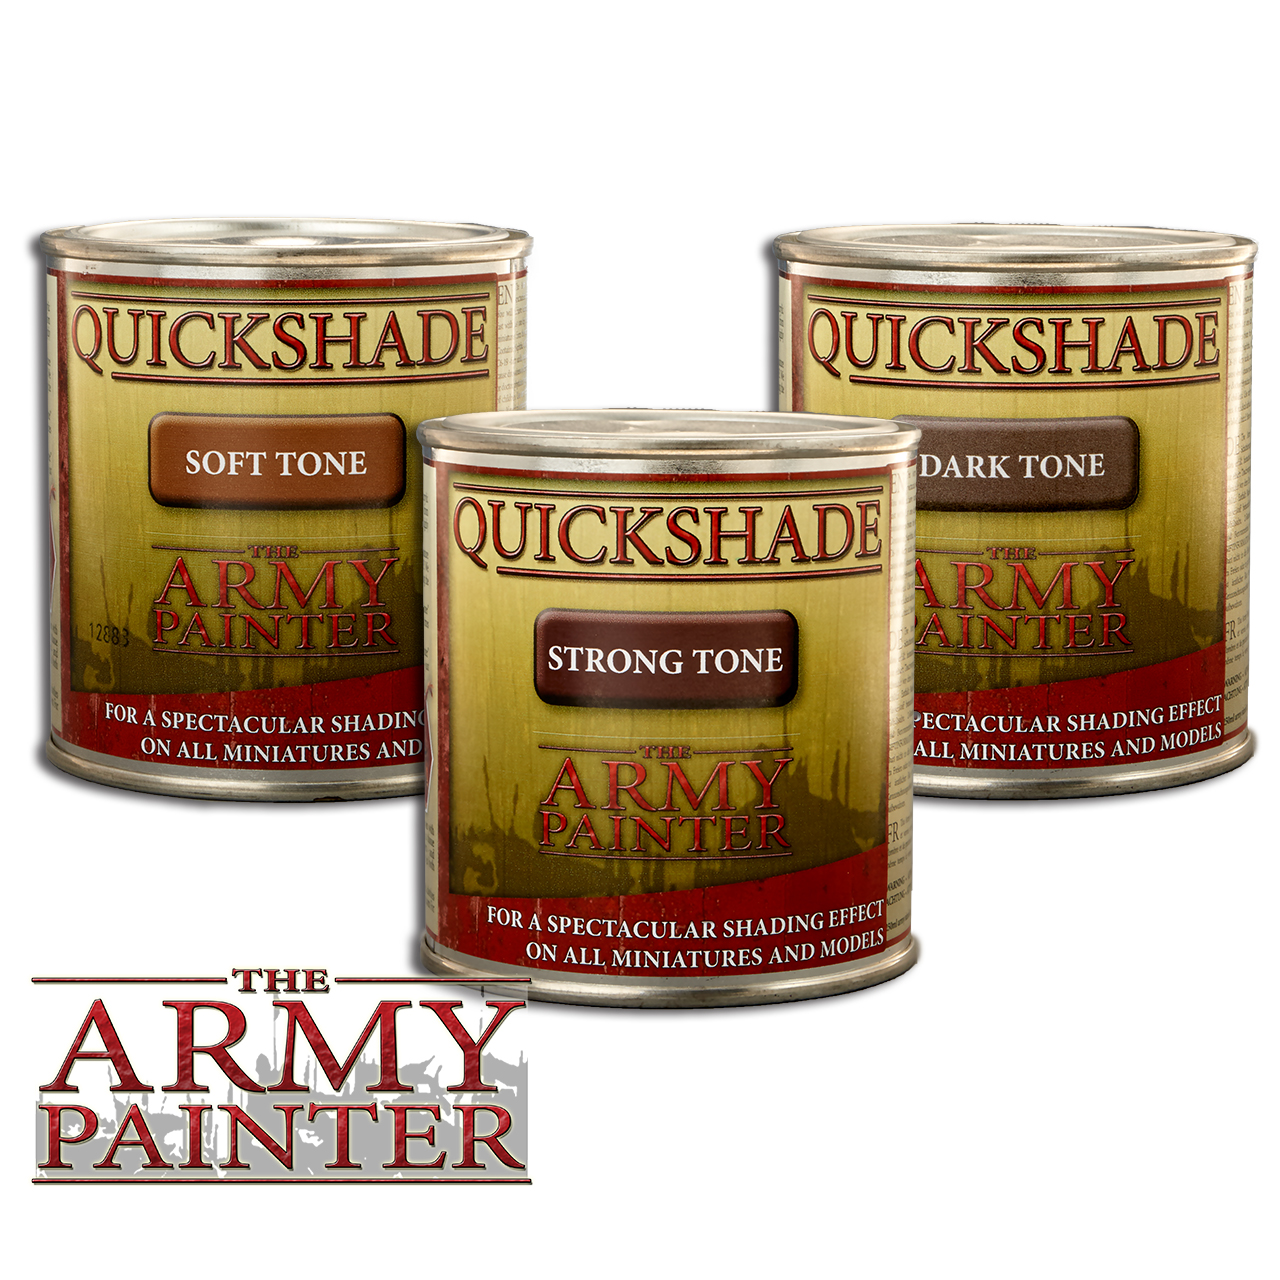 The Army Painter Quickshade